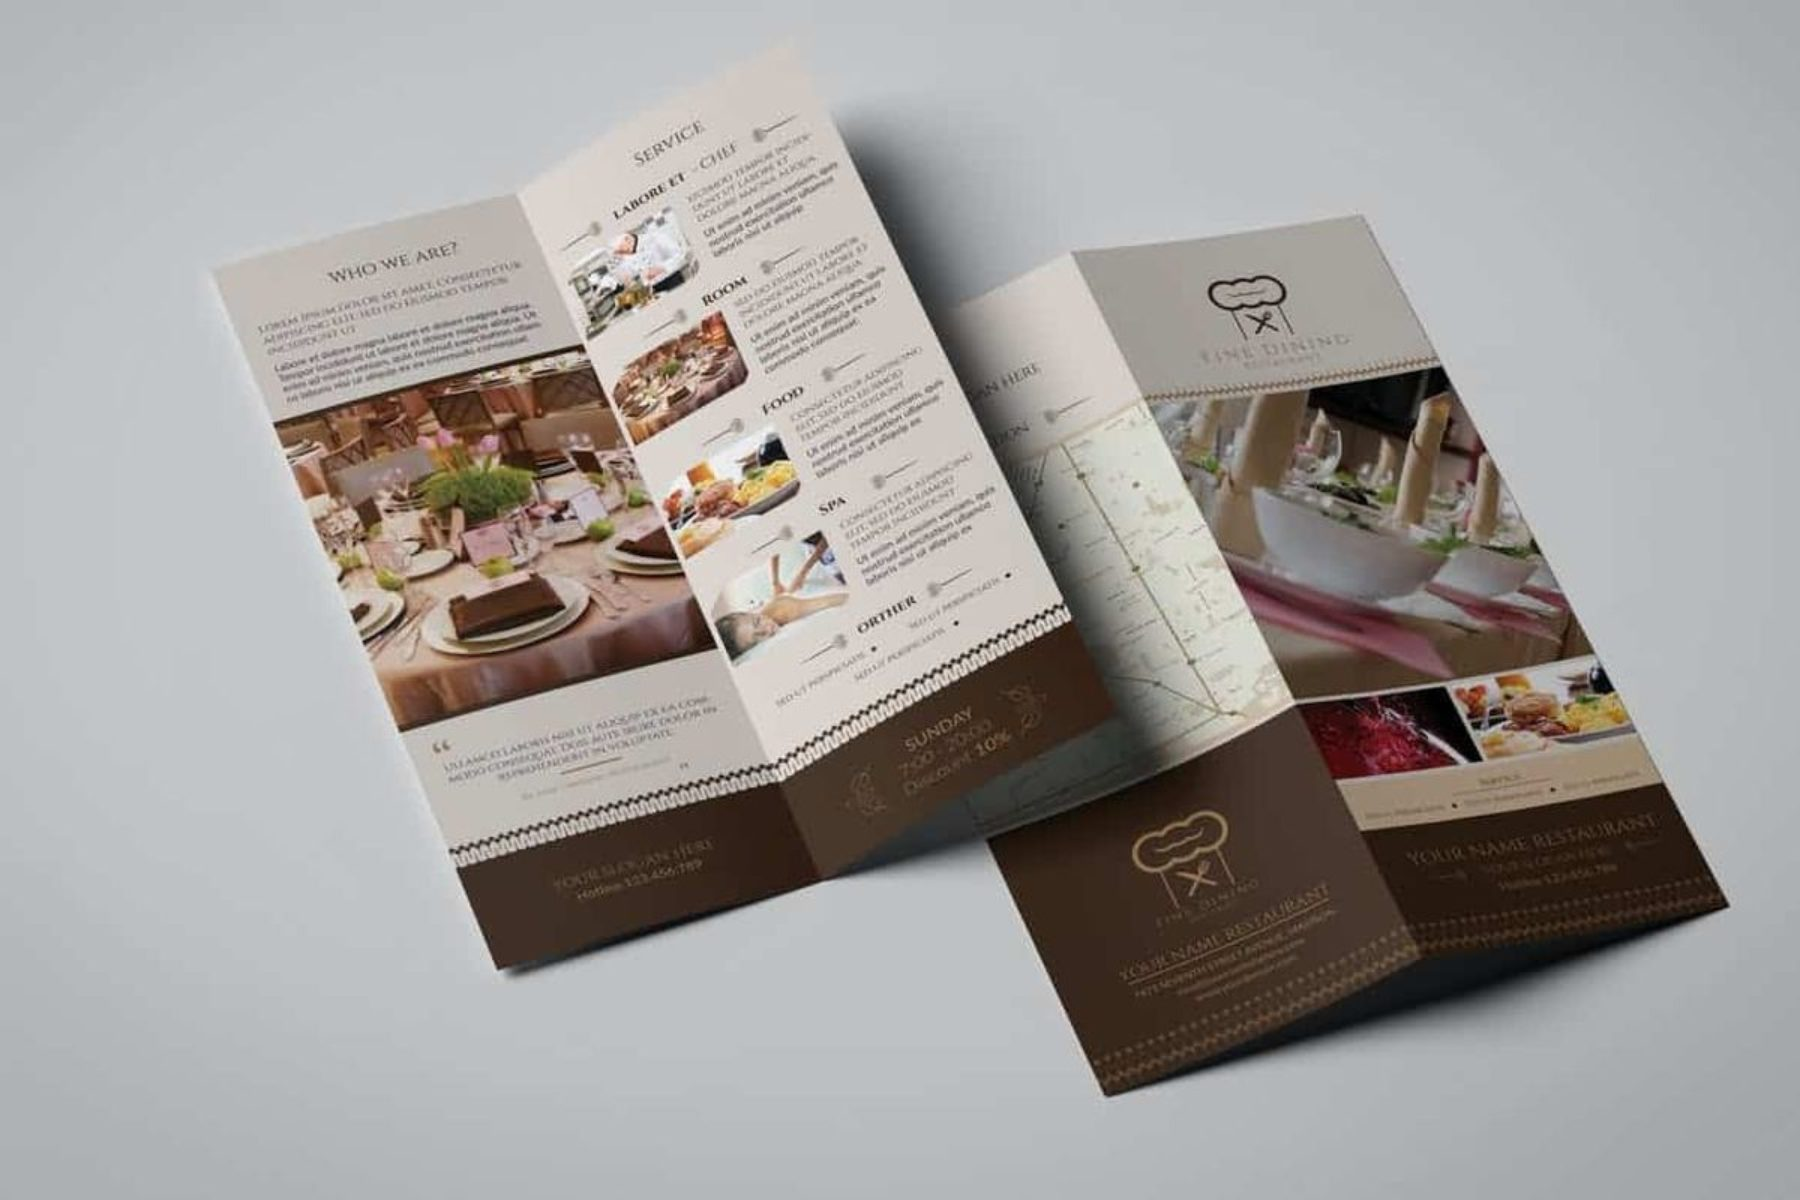 Take out restaurant menu - back and front